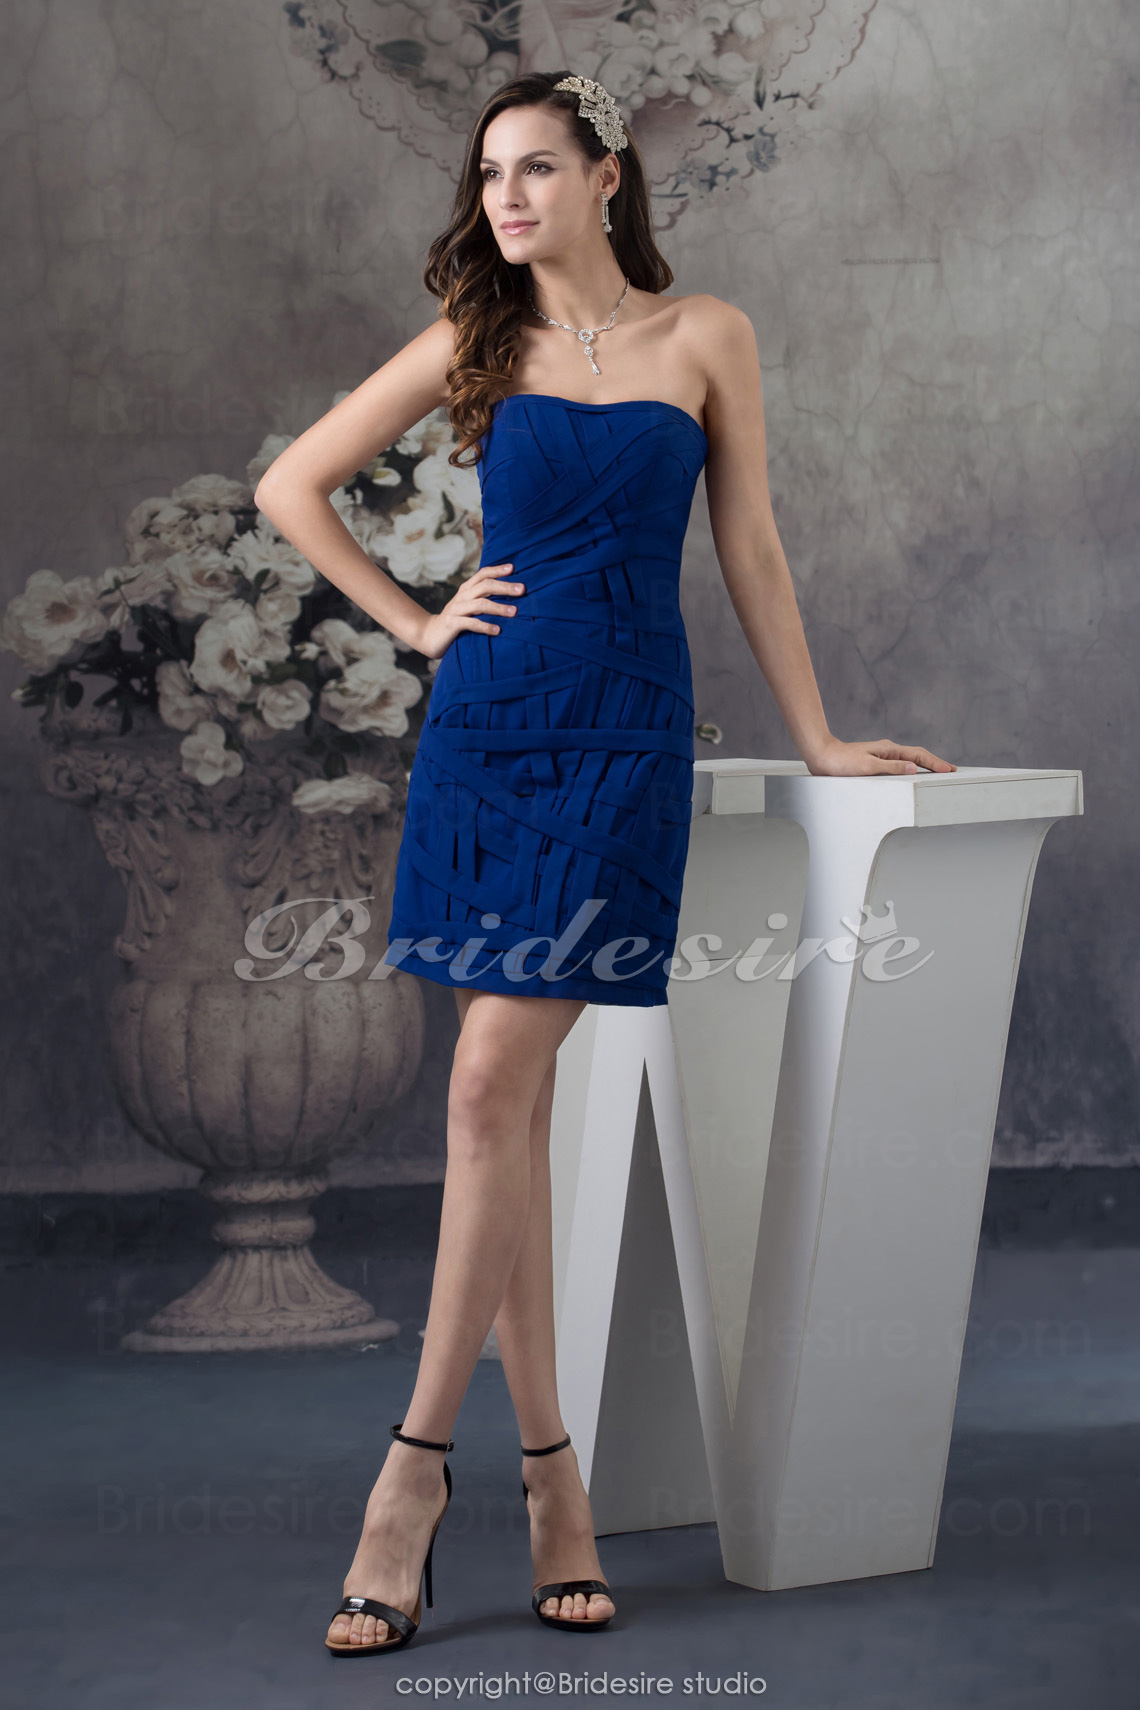 Sheath/Column Strapless Short/Mini Sleeveless Chiffon Bridesmaid Dress